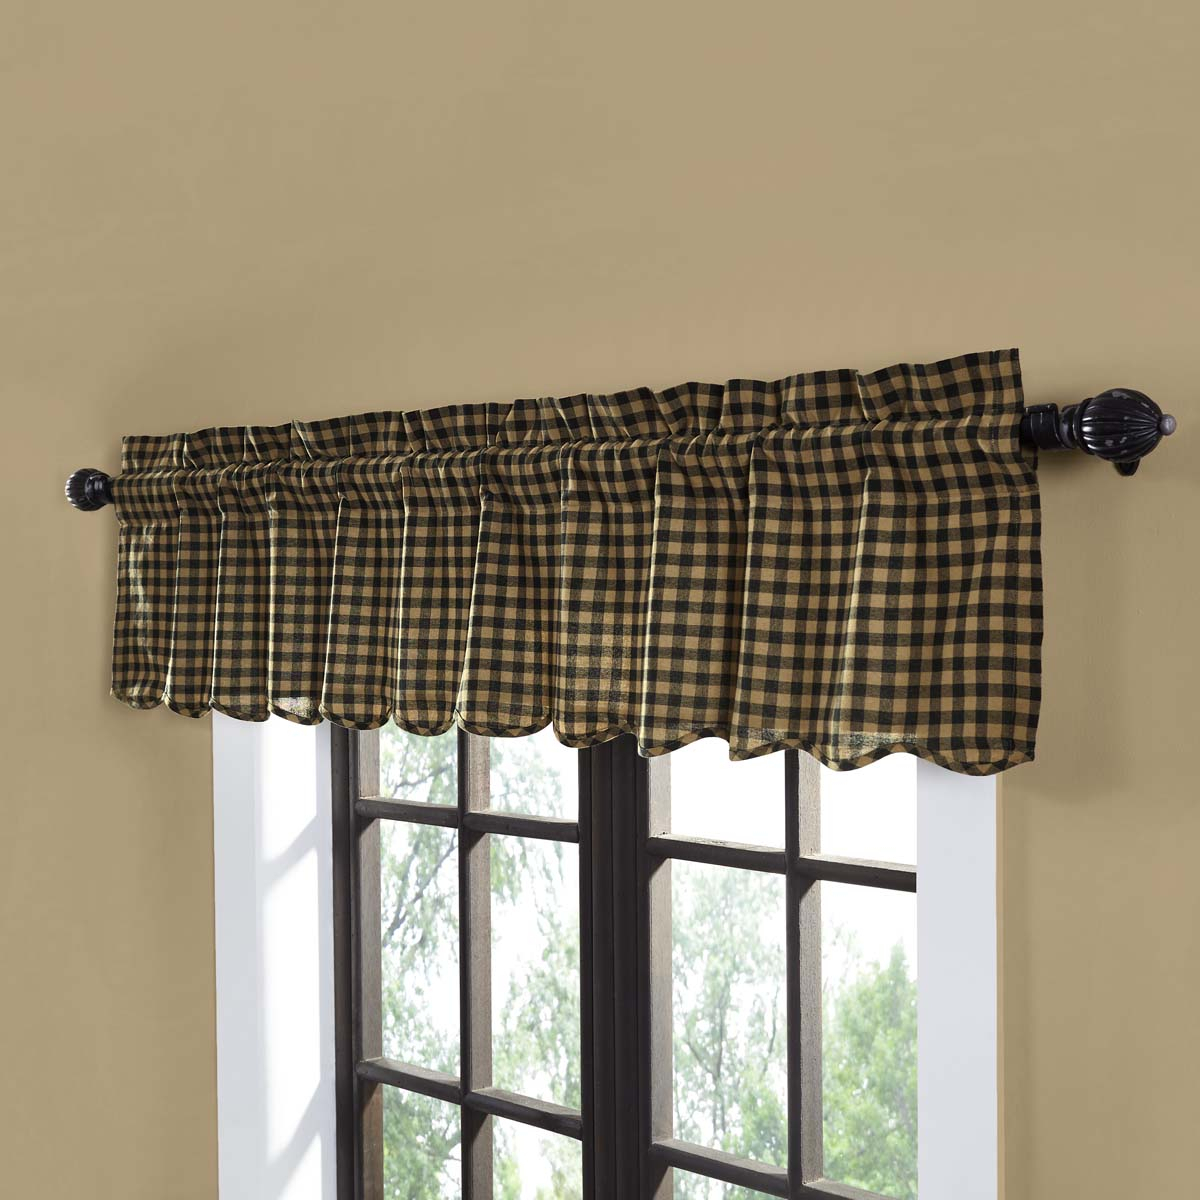 Raven Black Primitive Kitchen Curtains Cody Black Check Rod Pocket Cotton Check 16x72 Valance Regarding Primitive Kitchen Curtains (View 15 of 20)